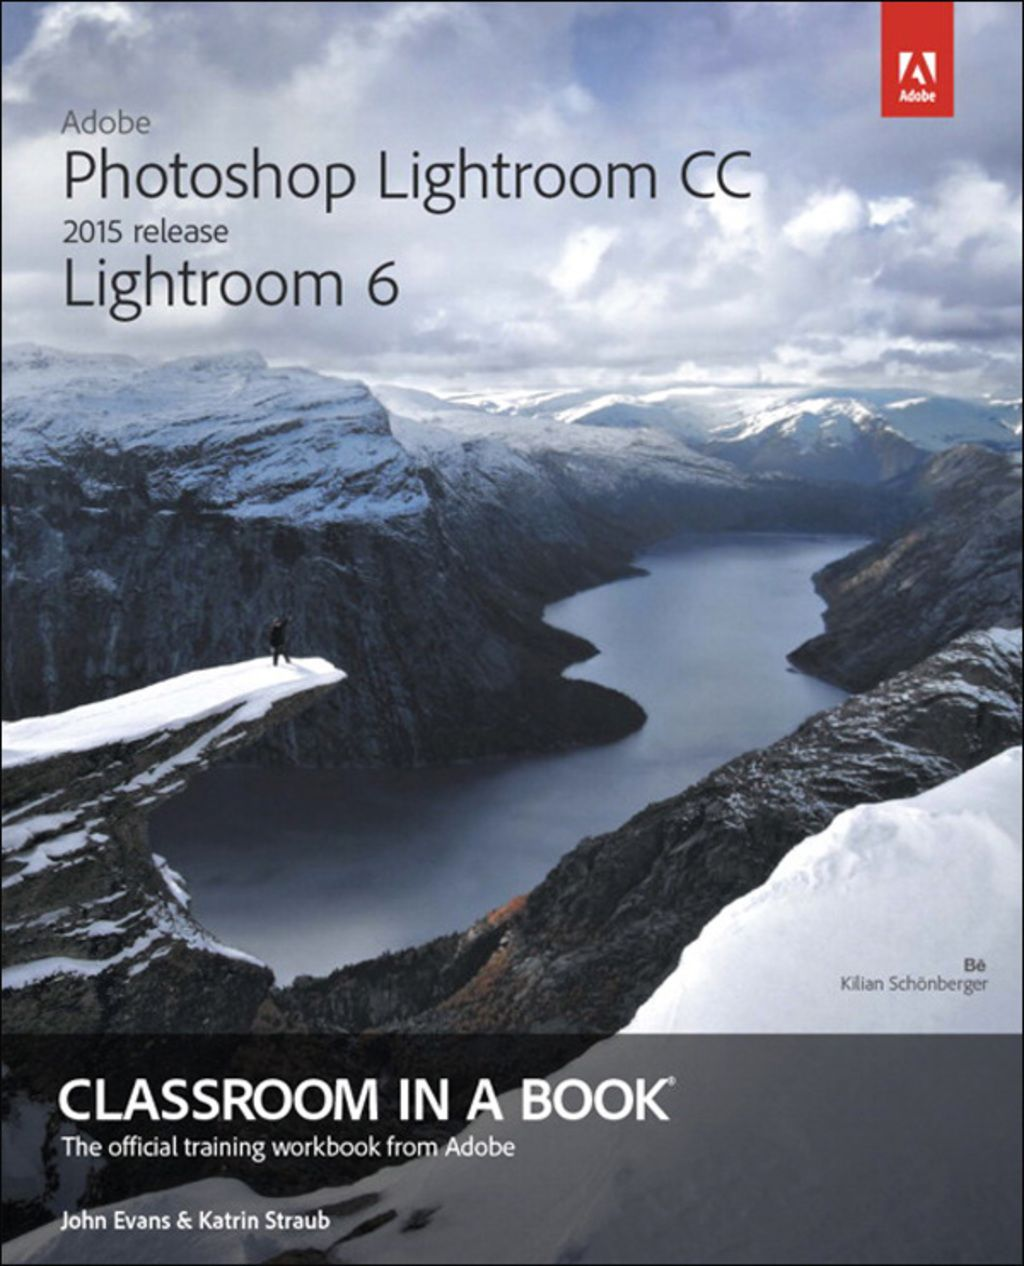 Adobe Photoshop Lightroom Cc 2015 Release Lightroom 6 Classroom In A Book Ebook Photoshop Lightroom Adobe Photoshop Lightroom Lightroom